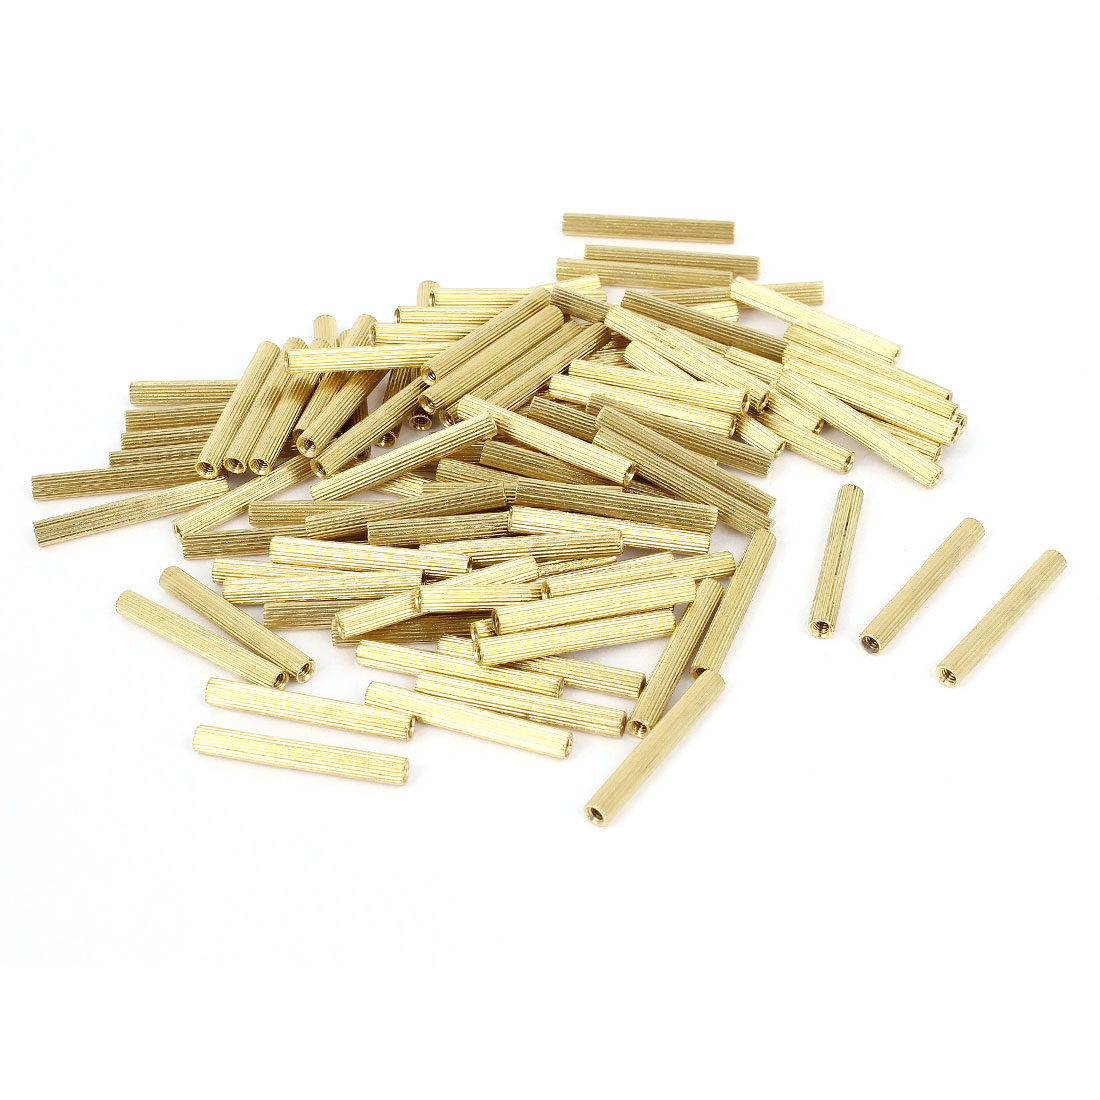 100 Pcs Female Threaded Pillars Brass Standoff Spacer Gold Tone M2x24mm